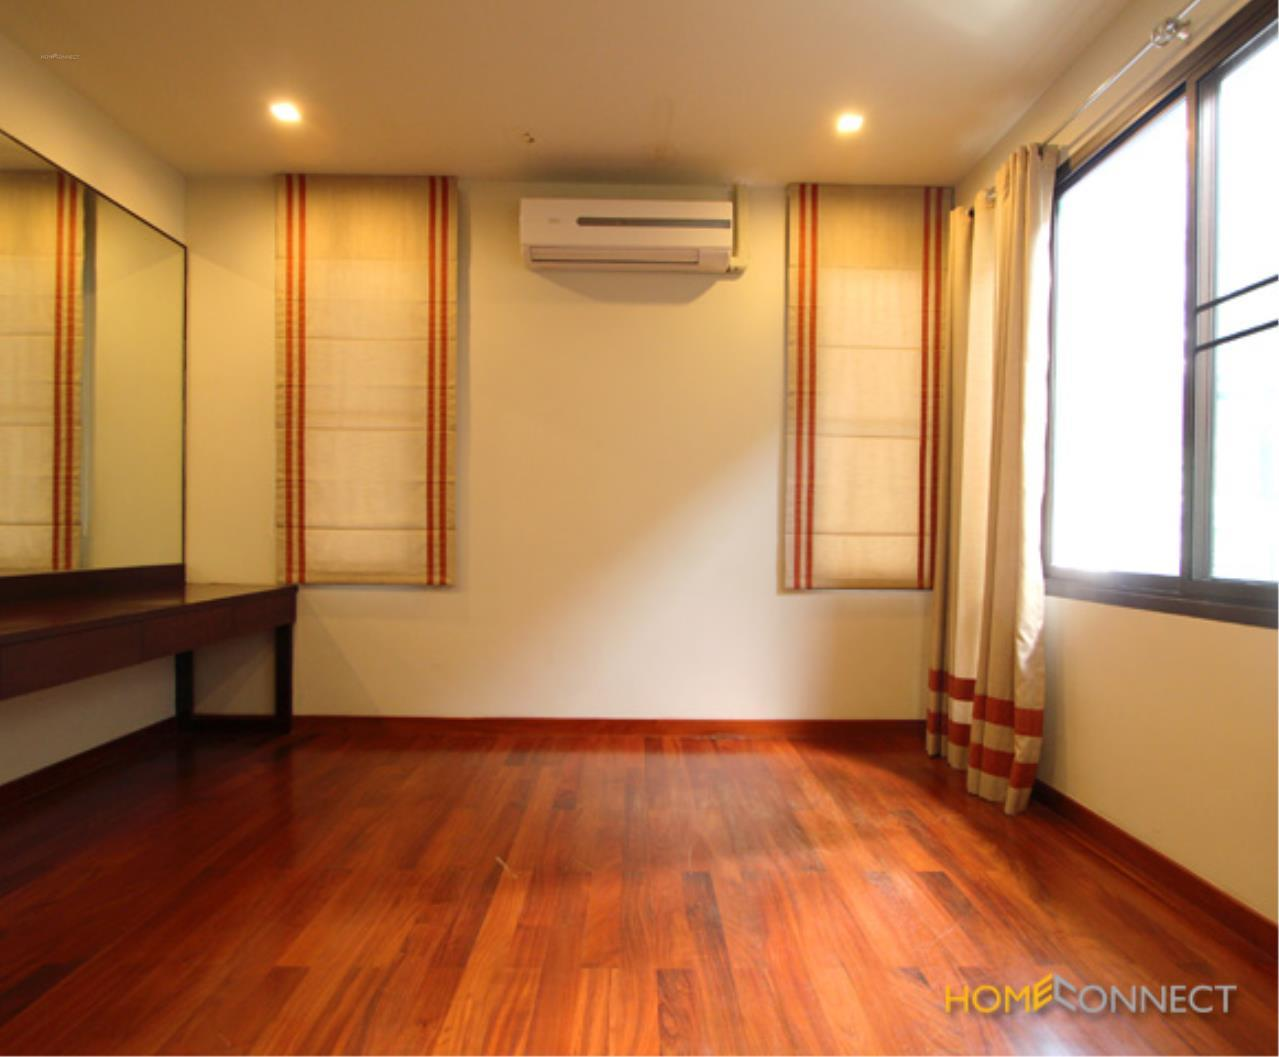 Home Connect Thailand Agency's Single House for rent in Suklhumvit 26  7